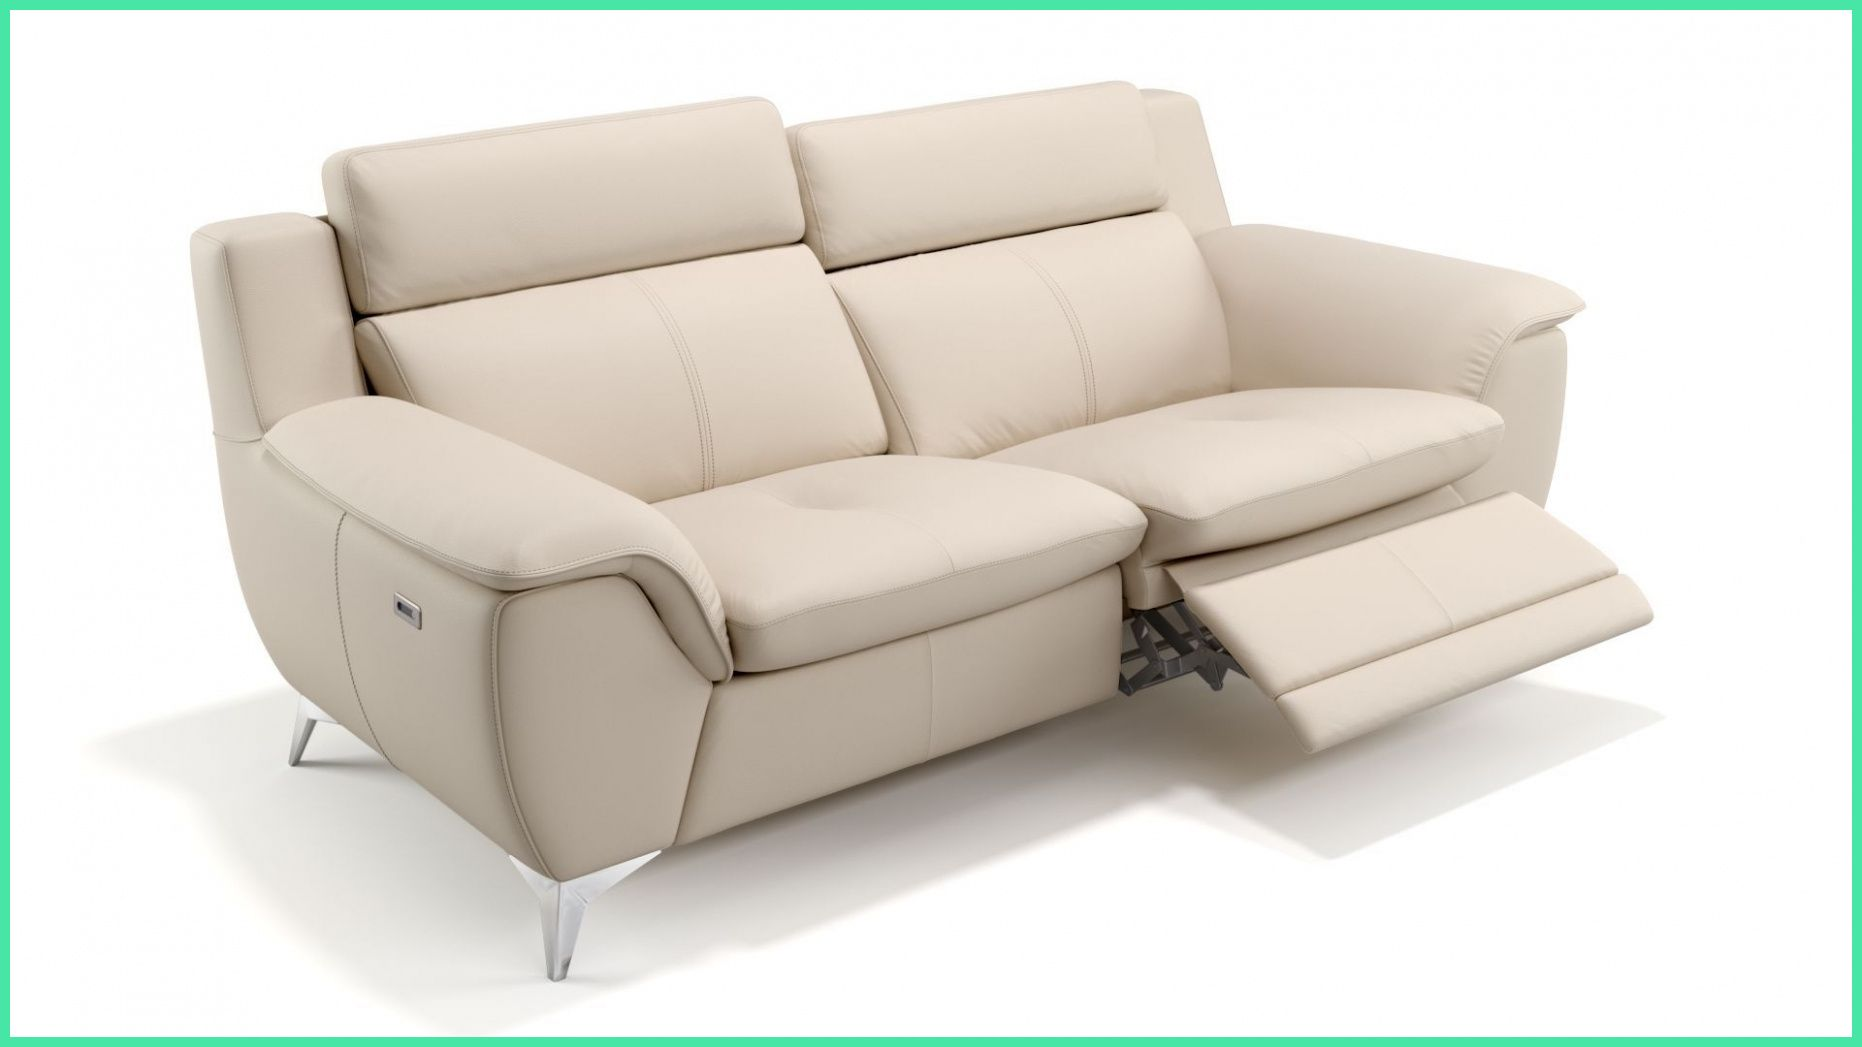 11 Ideal Relax Couch Elektrisch Couch Mobel Kunstleder Sofa Sofa